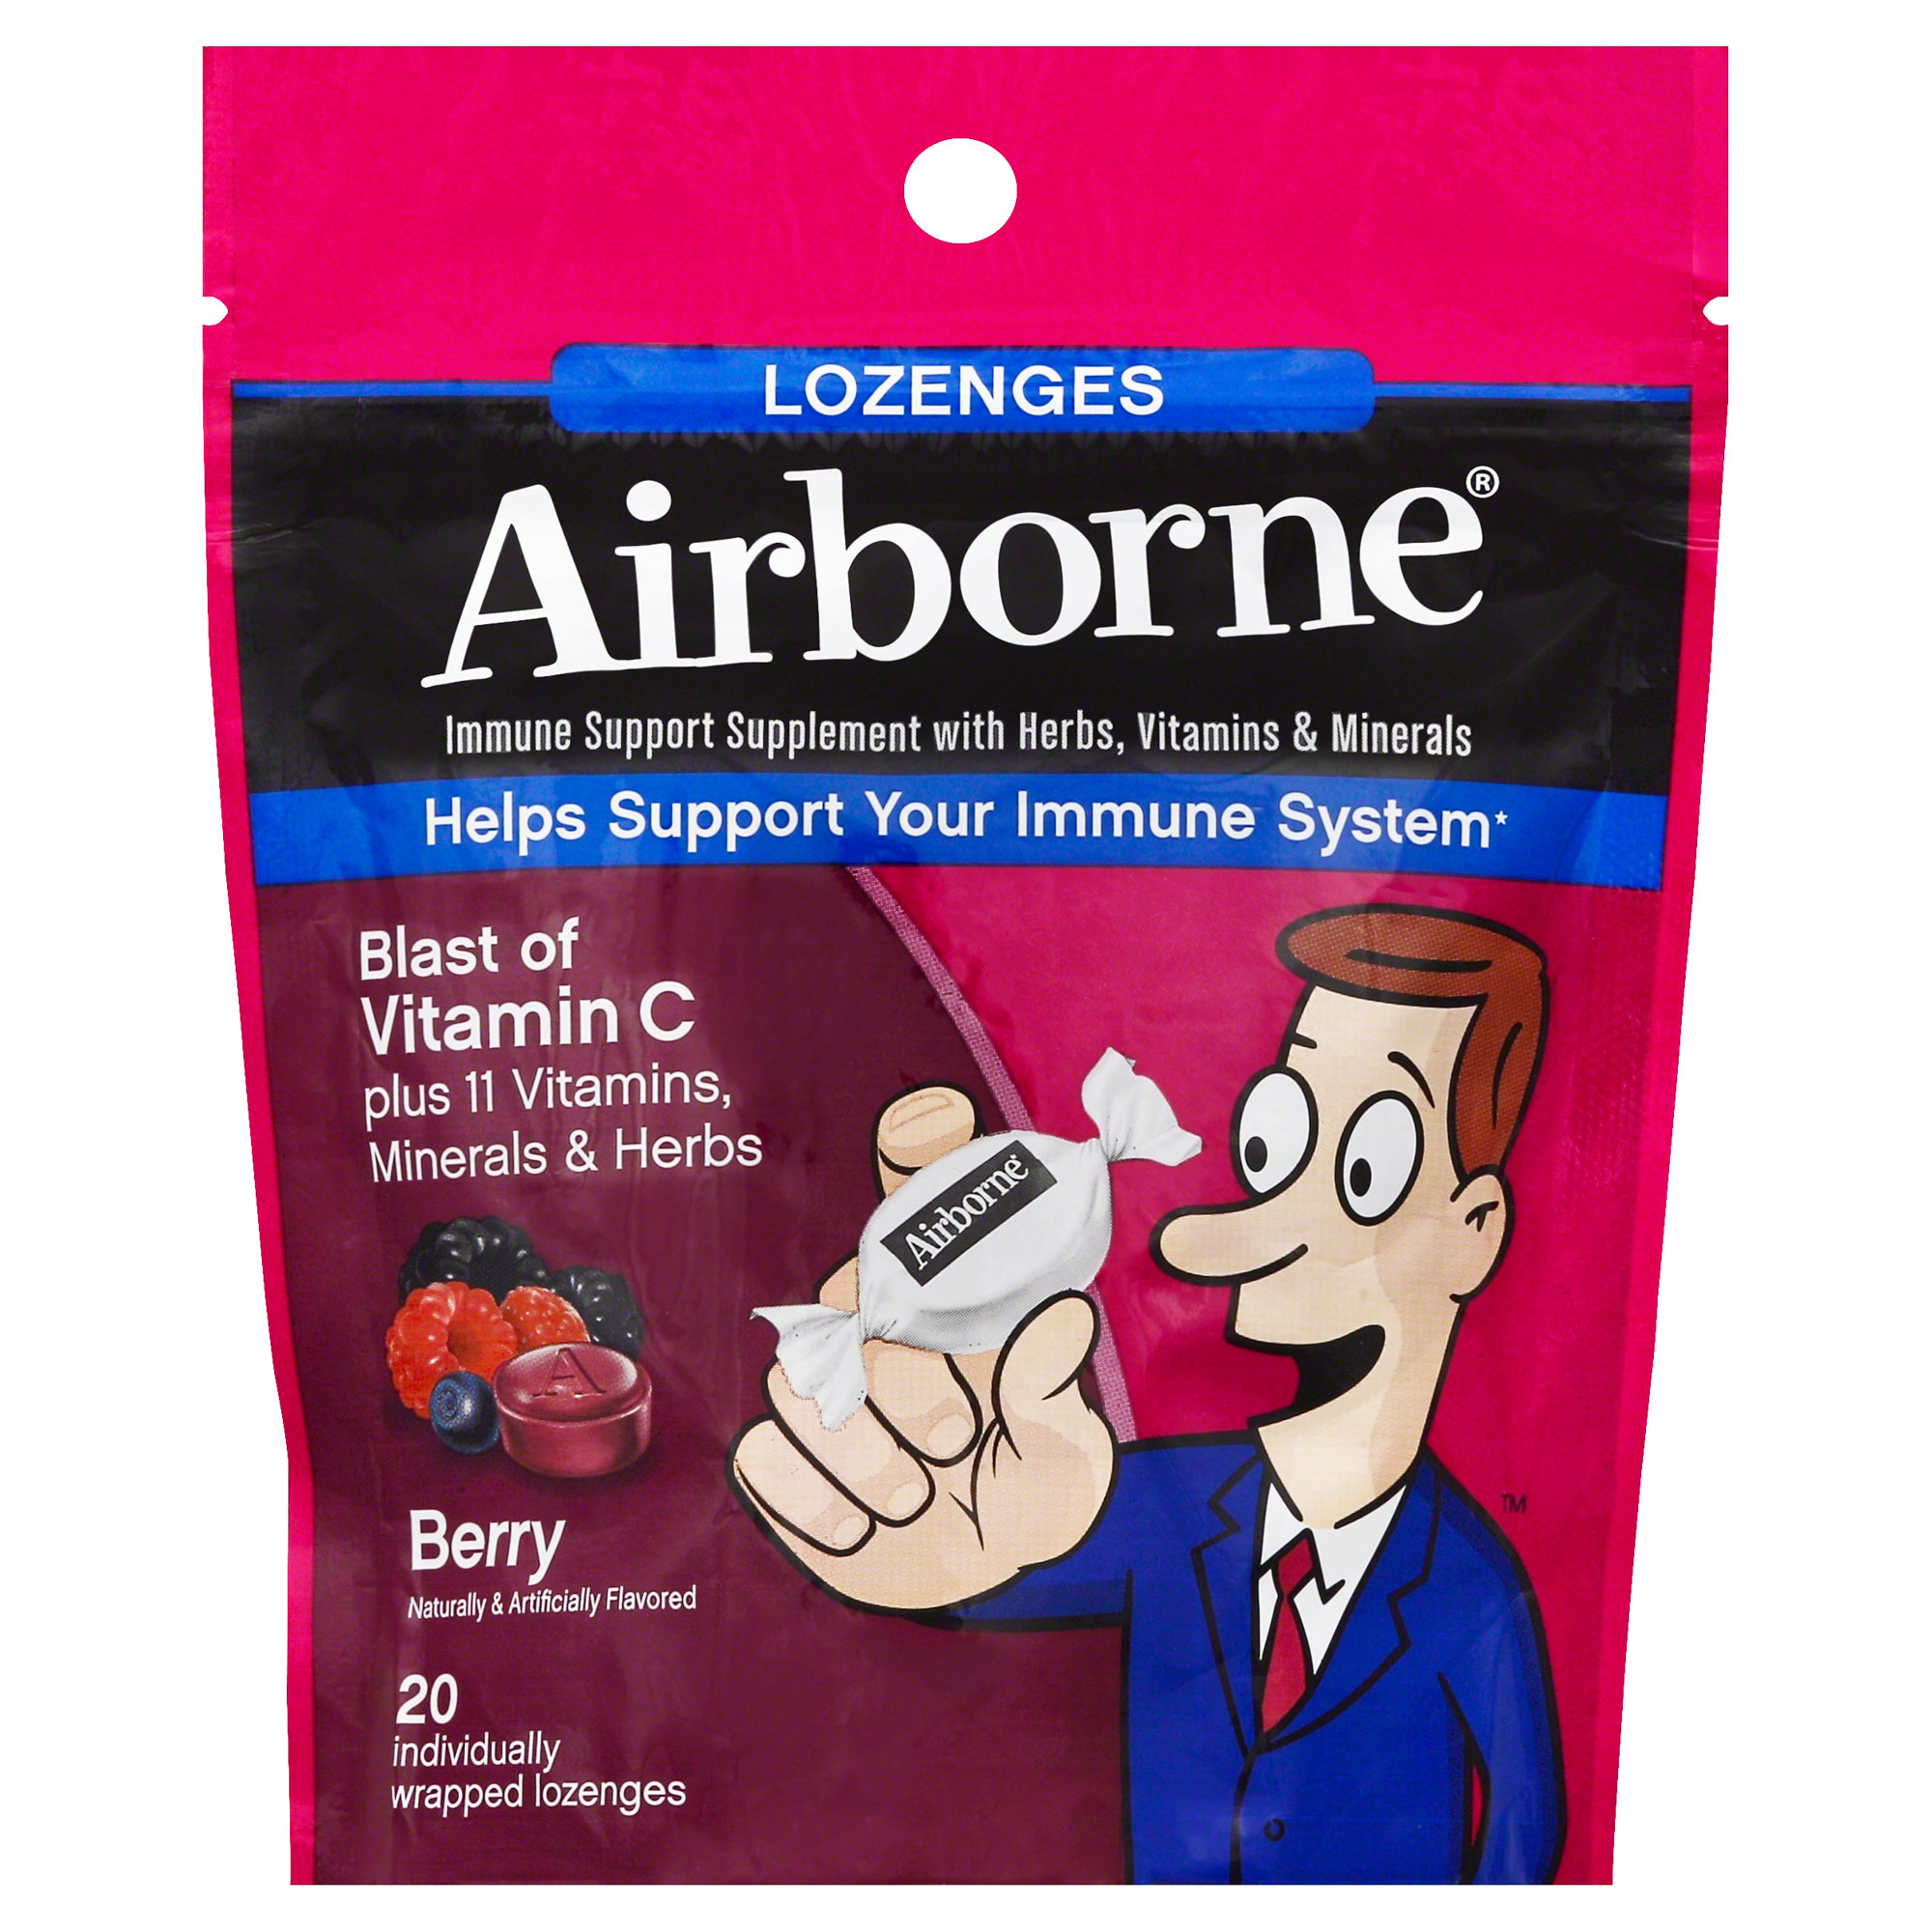 Airborne Vitamin C Lozenges, Berry, 1000mg - 20 Individually Wrapped Lozenges